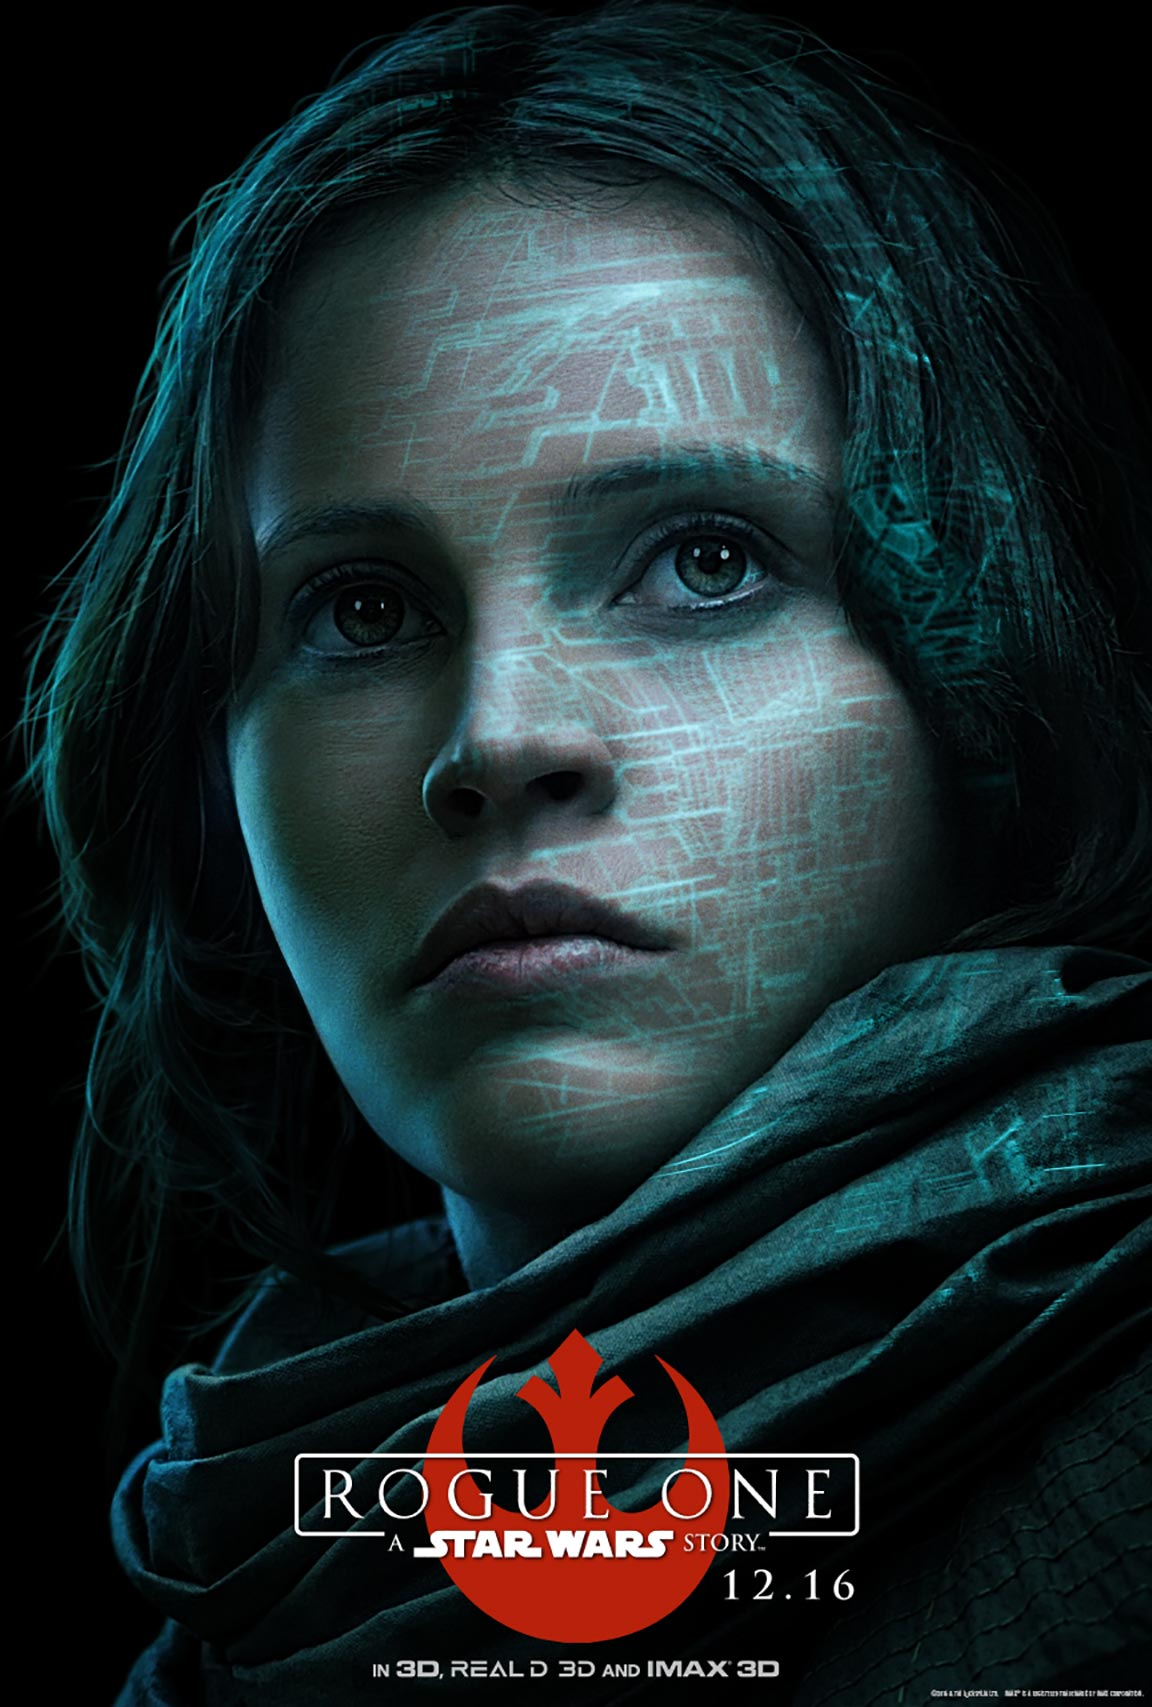 Star Wars Poster Rogue One A Star Wars Story 2016 Poster 1 Trailer Addict